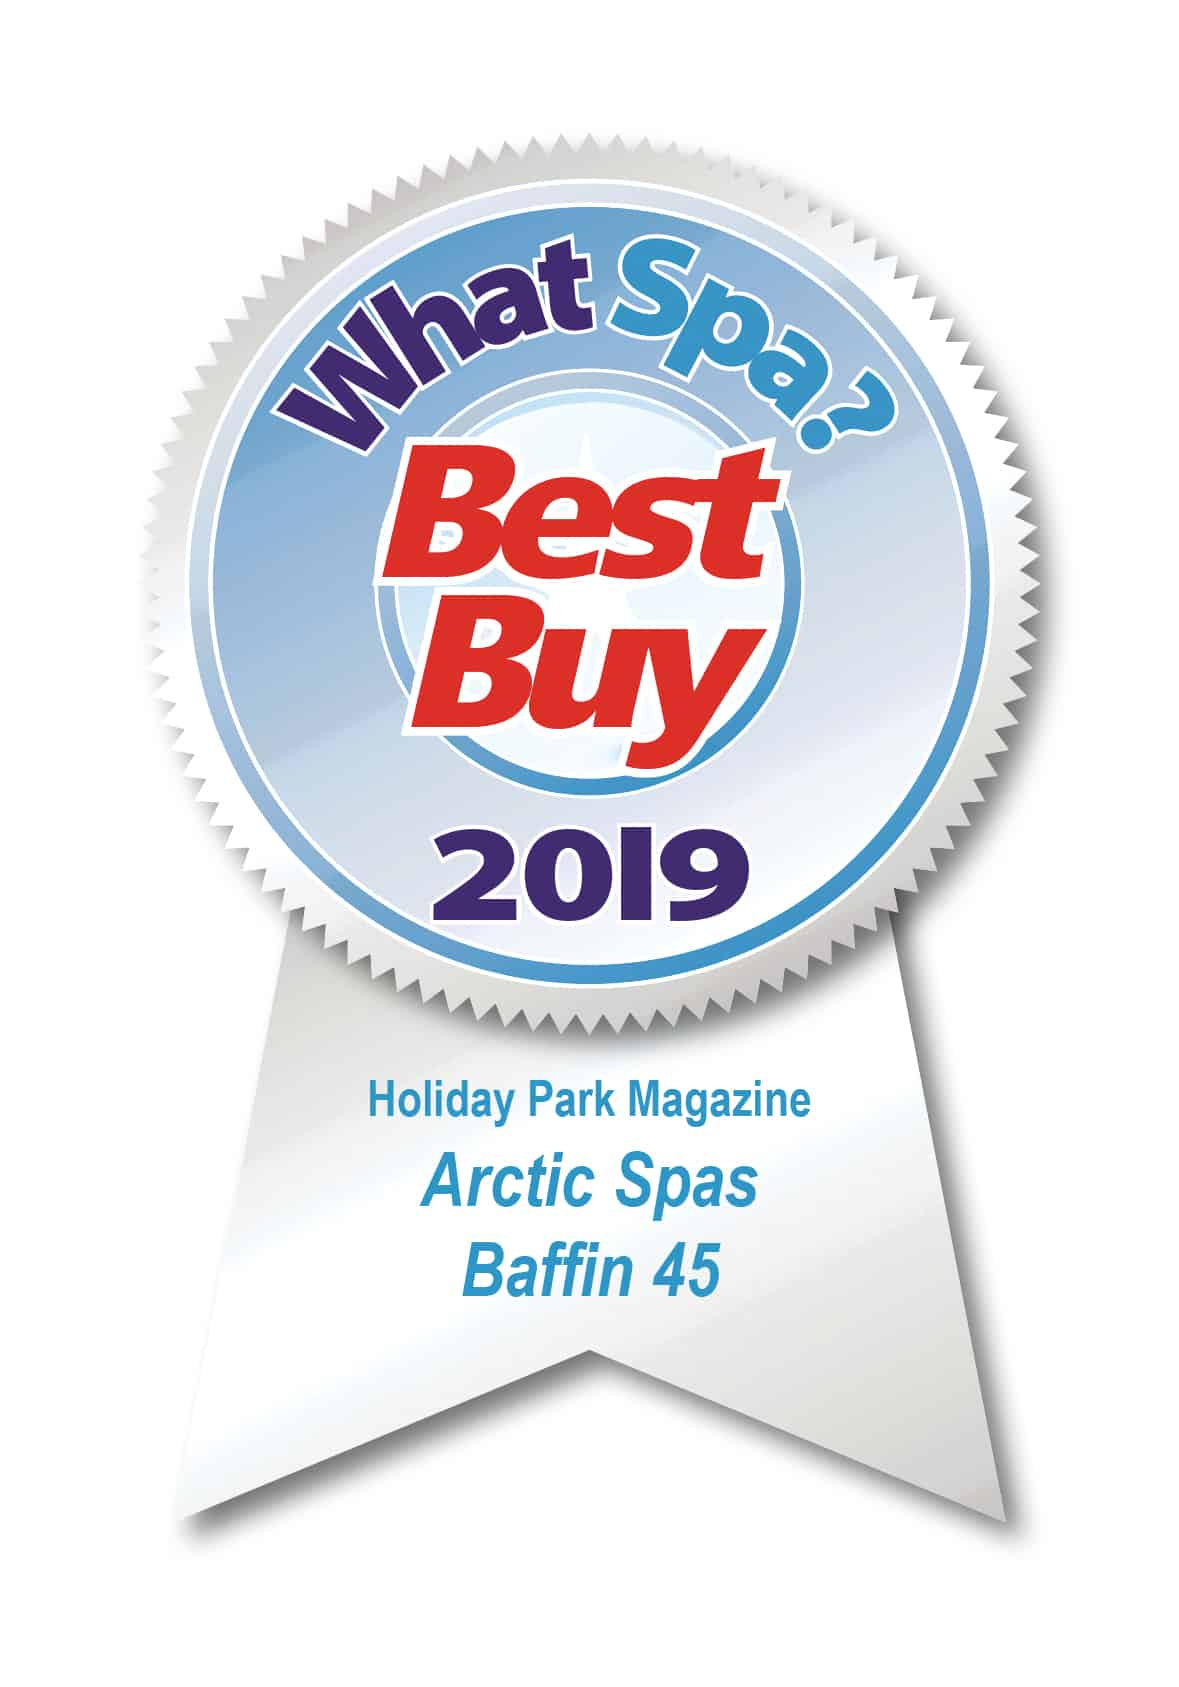 Arctic Spas UK Best Buy 2019 Buffin 45 model